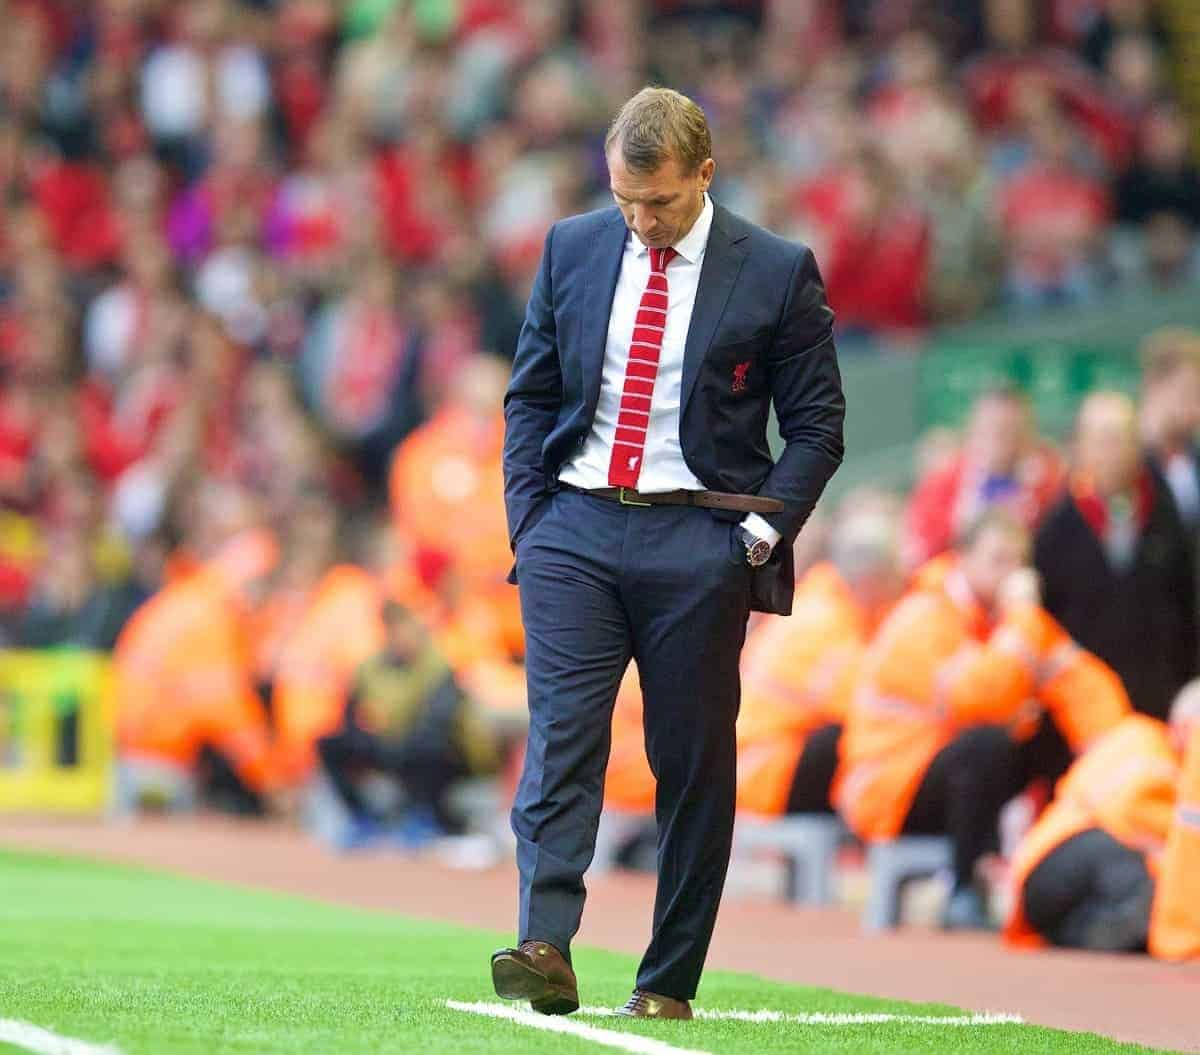 LIVERPOOL, ENGLAND - Saturday, September 13, 2014: Liverpool's manager Brendan Rodgers looks dejected against Aston Villa during the Premier League match at Anfield. (Pic by David Rawcliffe/Propaganda)